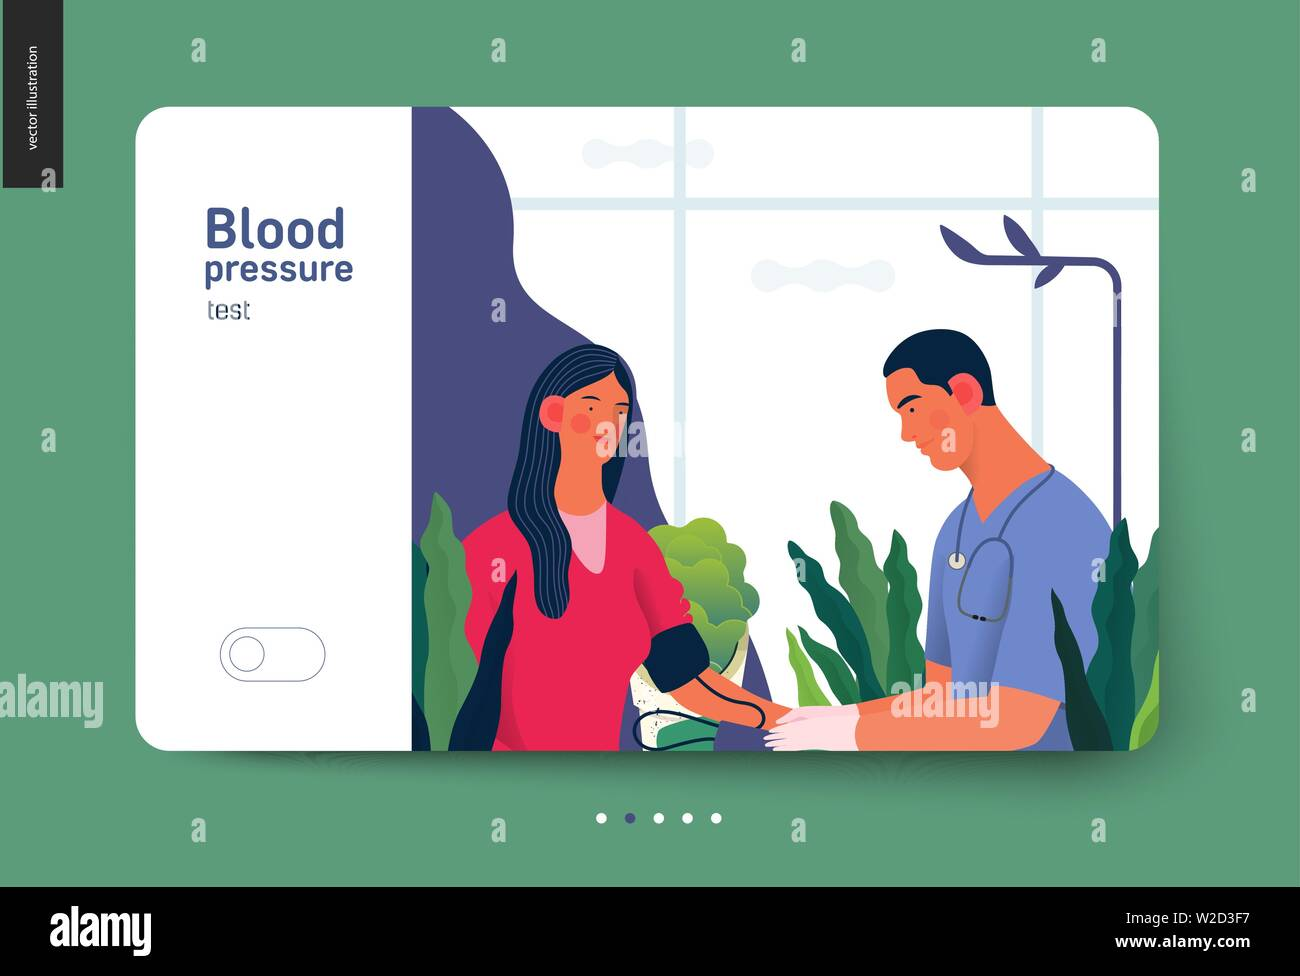 Medical tests template - blood pressure test - modern flat vector concept digital illustration of blood pressure measurement procedure - a patient and Stock Vector